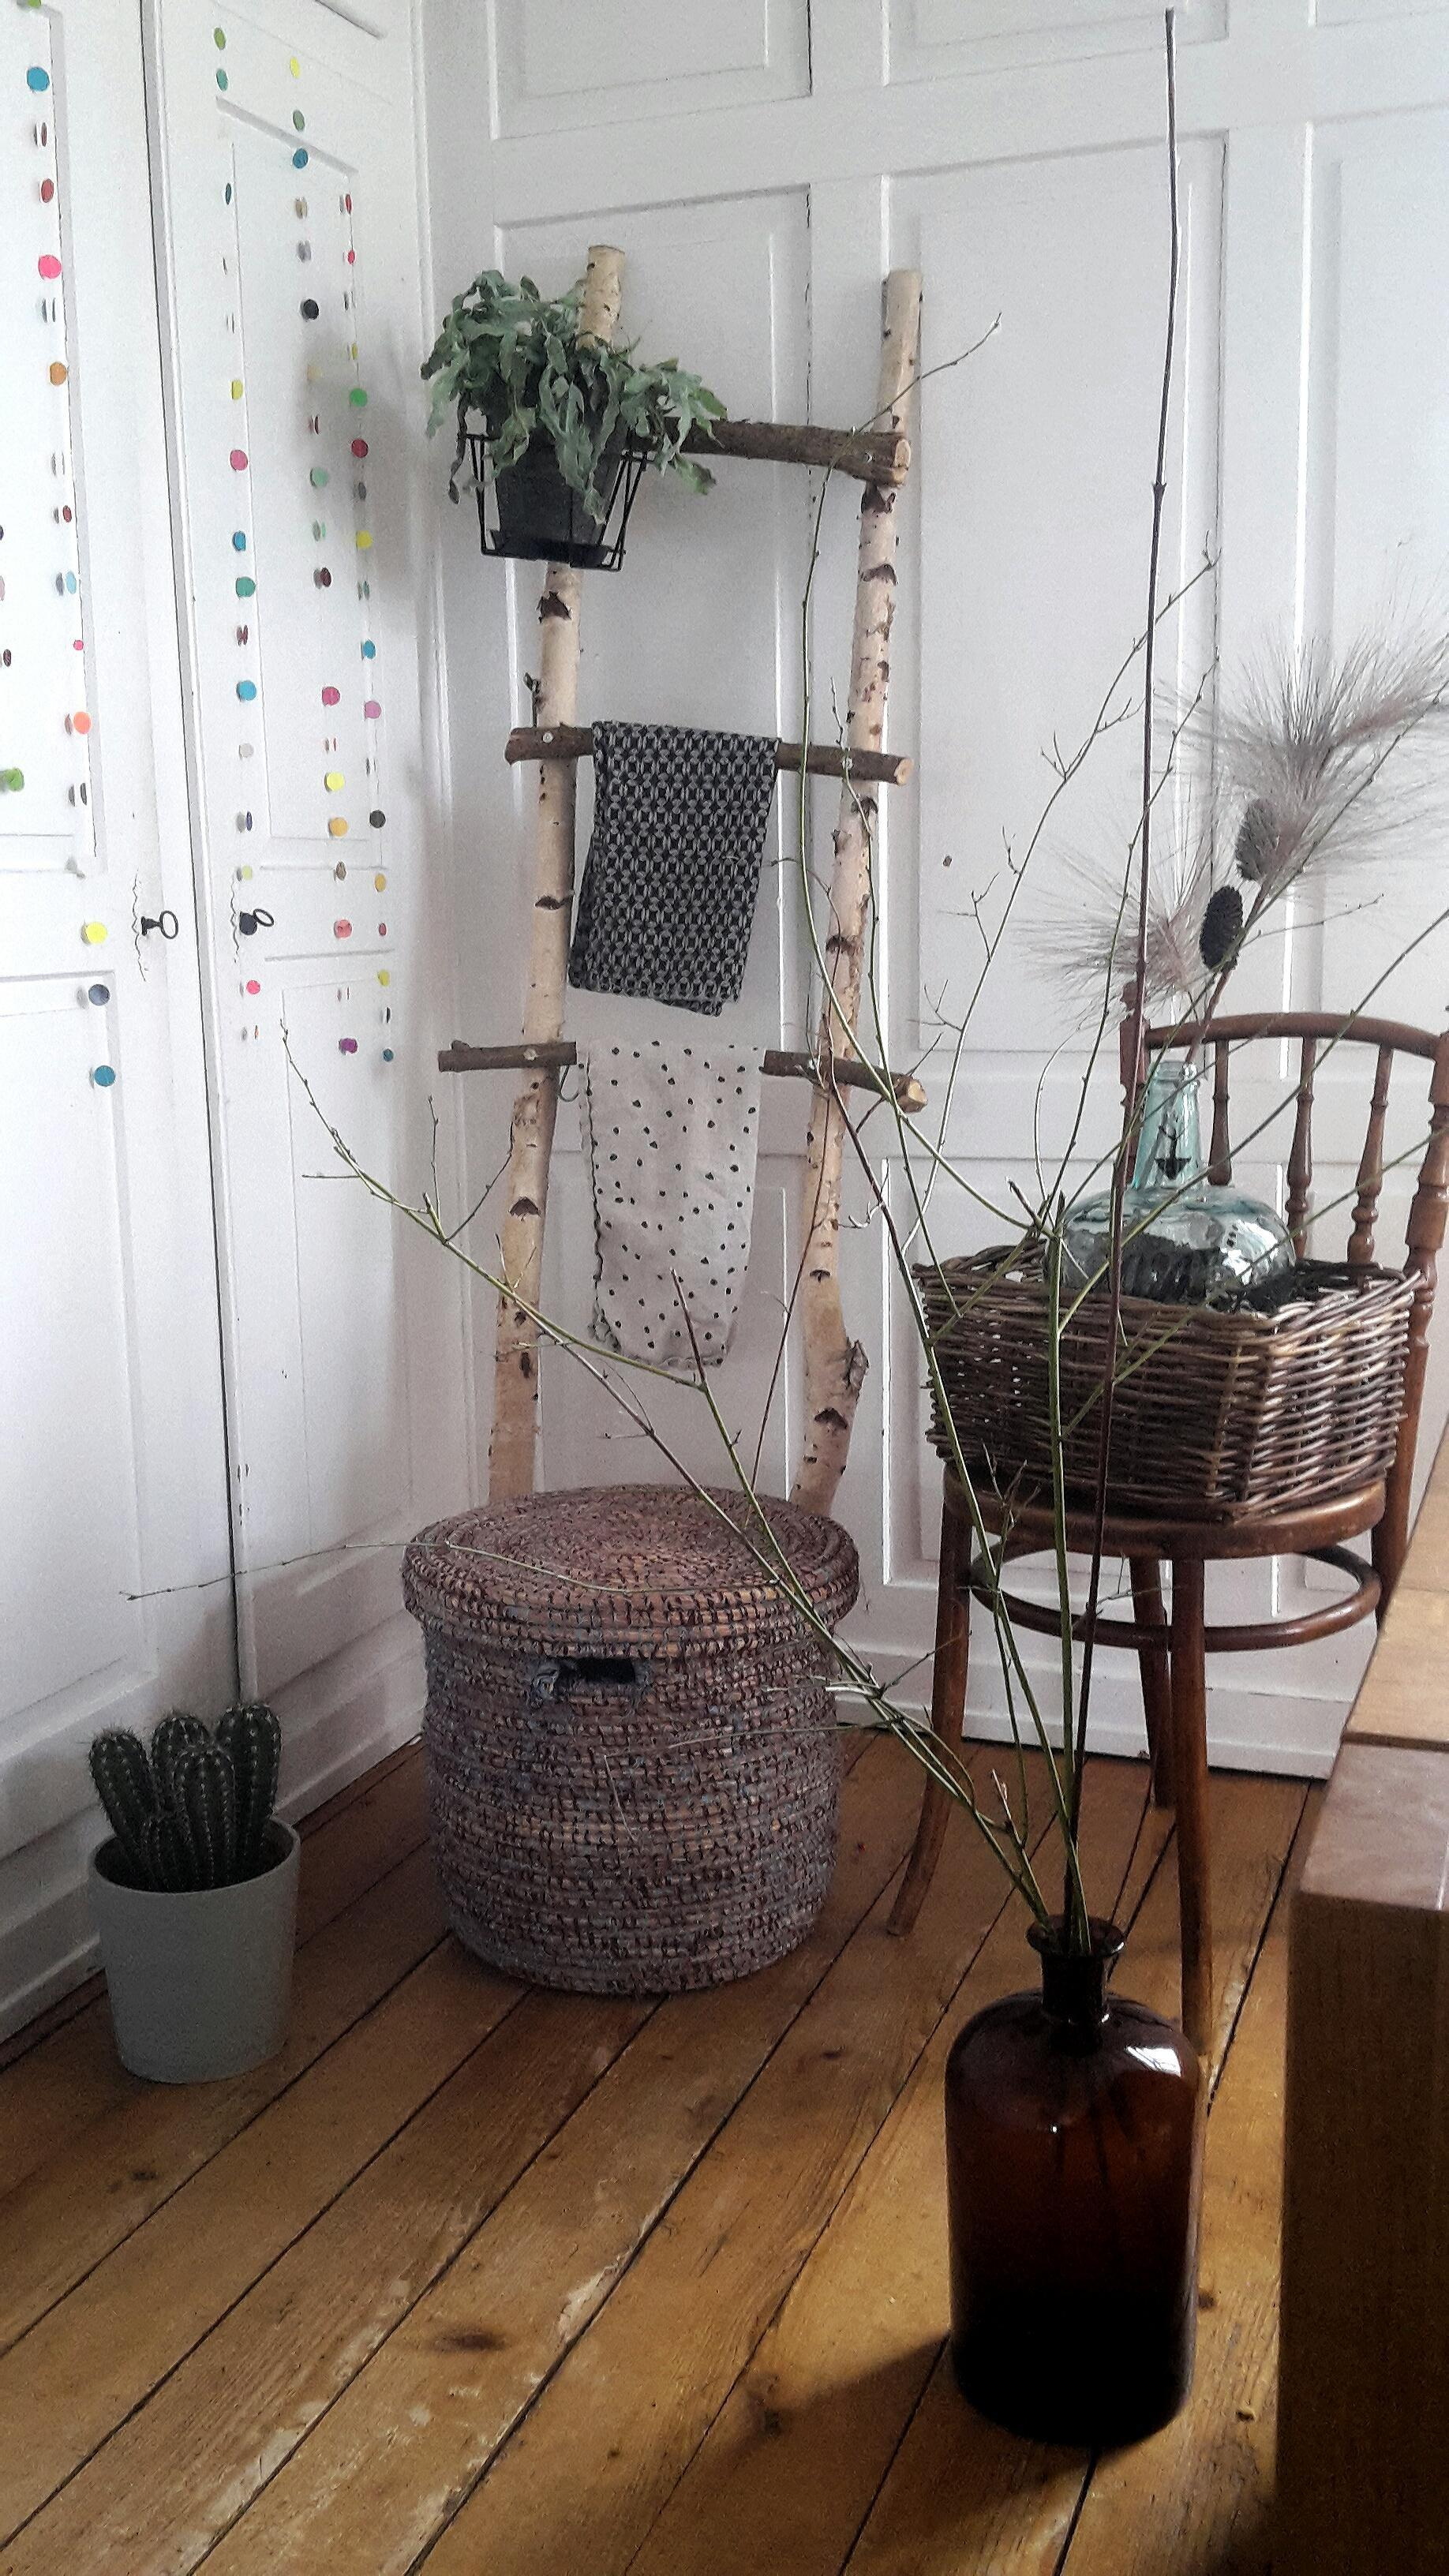 #urbanjungle #flur #birke #körbe #homedecor #lovehome